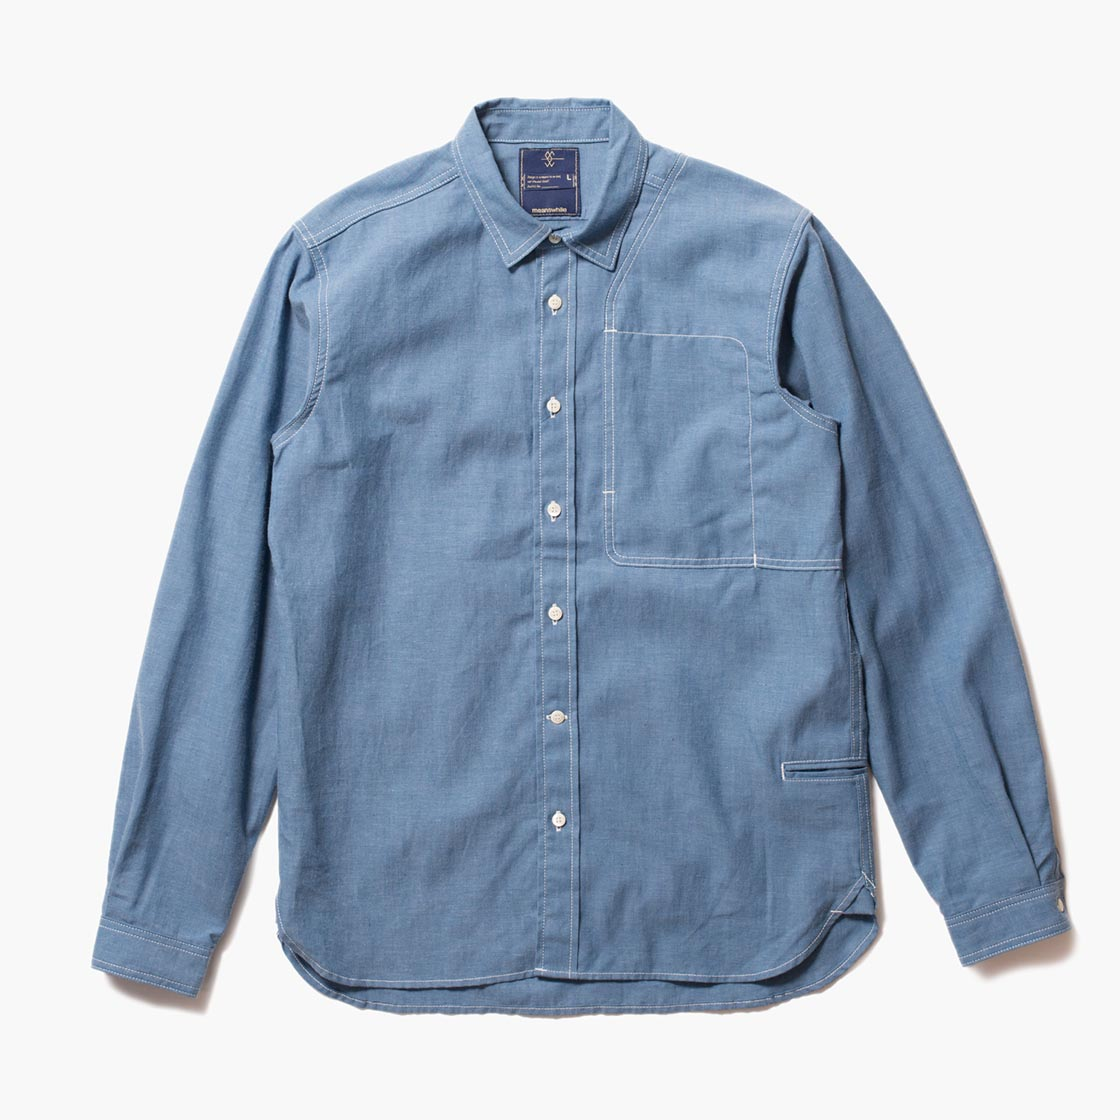 Cotton Chambray Shoulder Pad Work SH